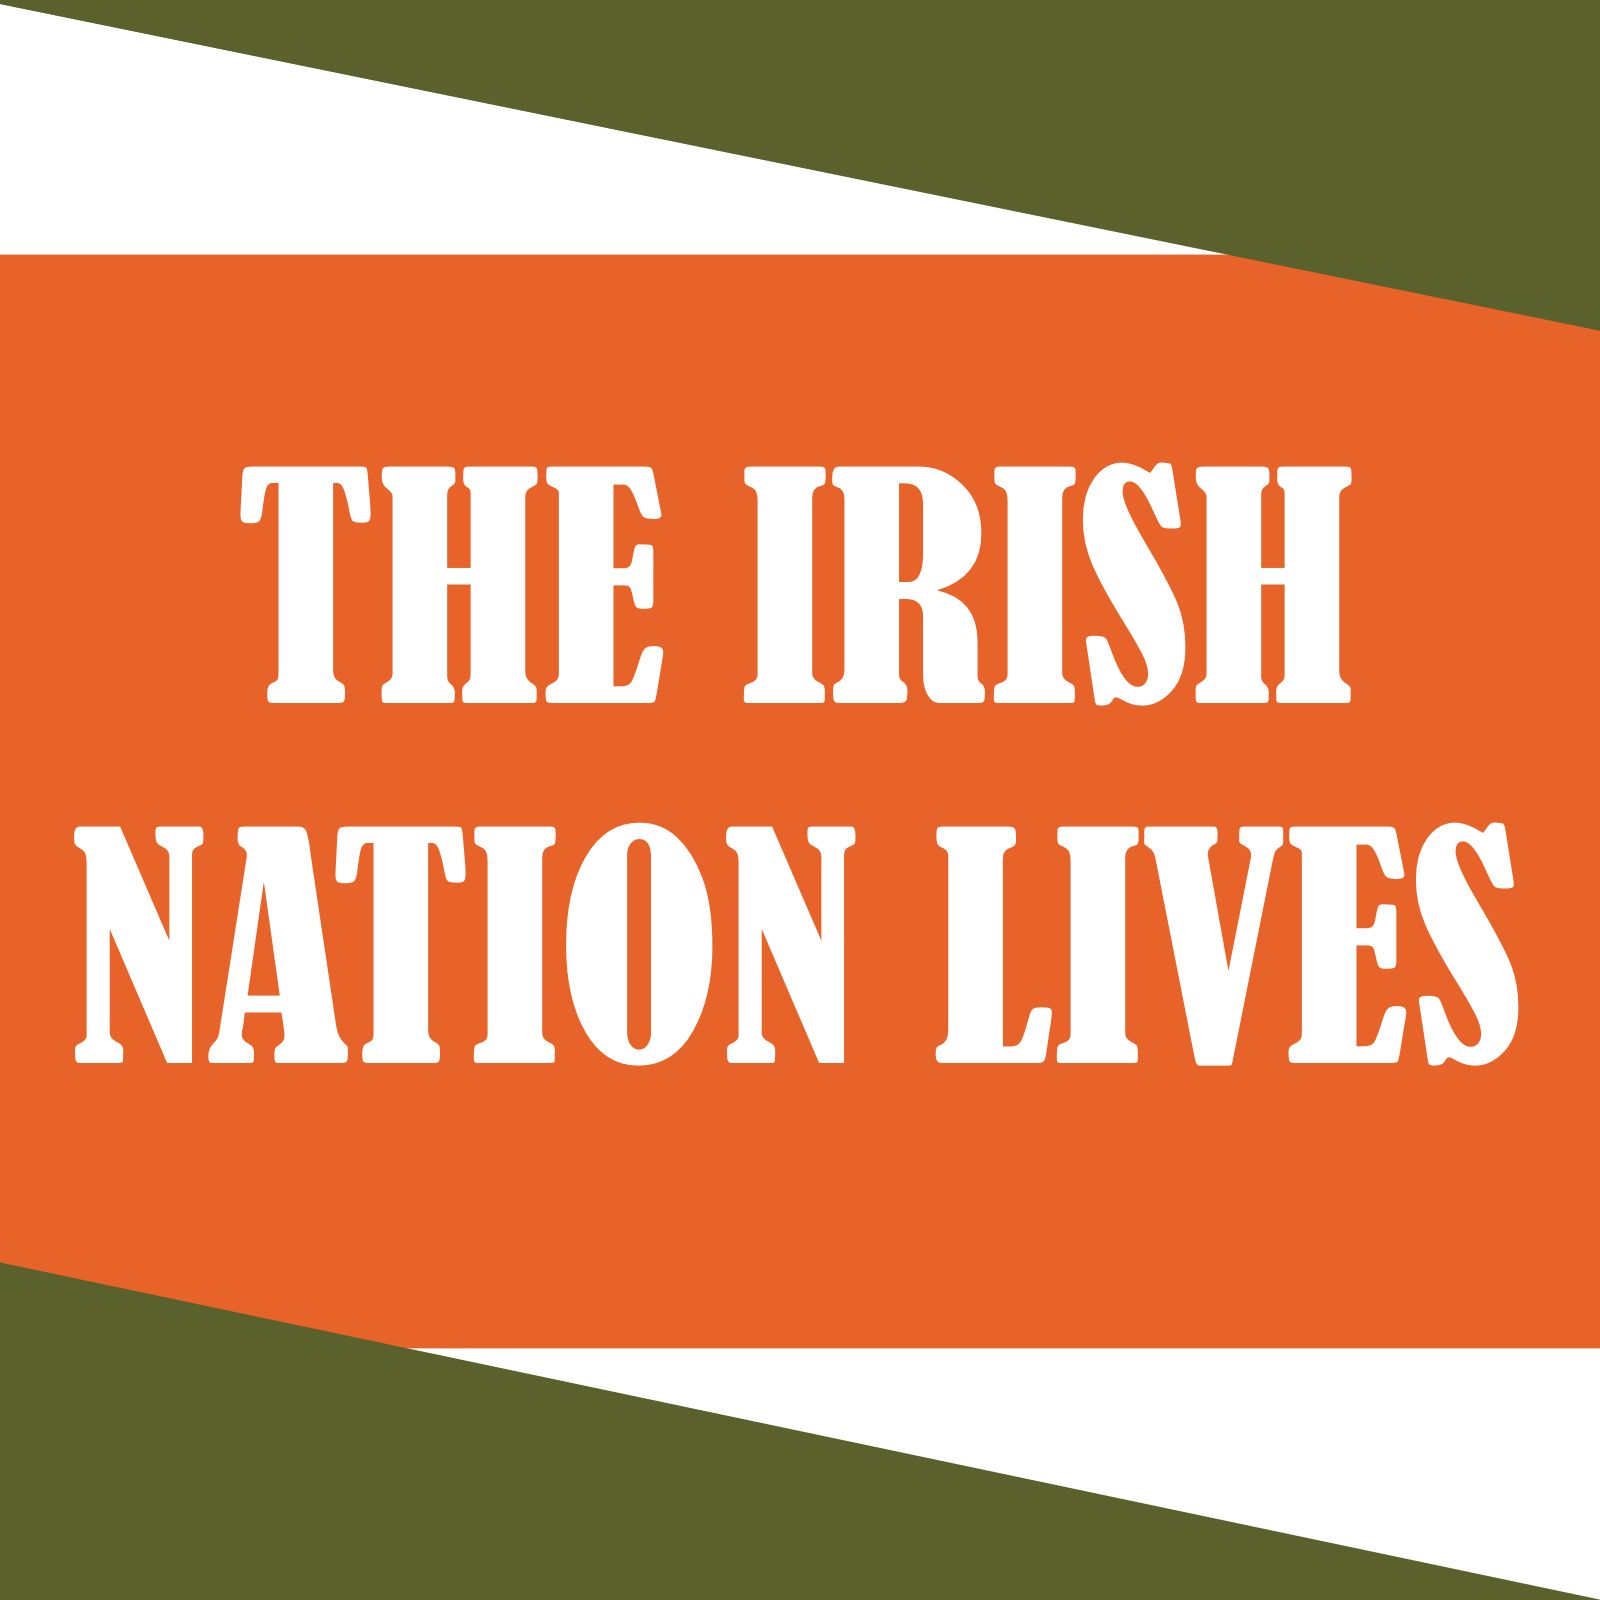 The Irish Nation Lives